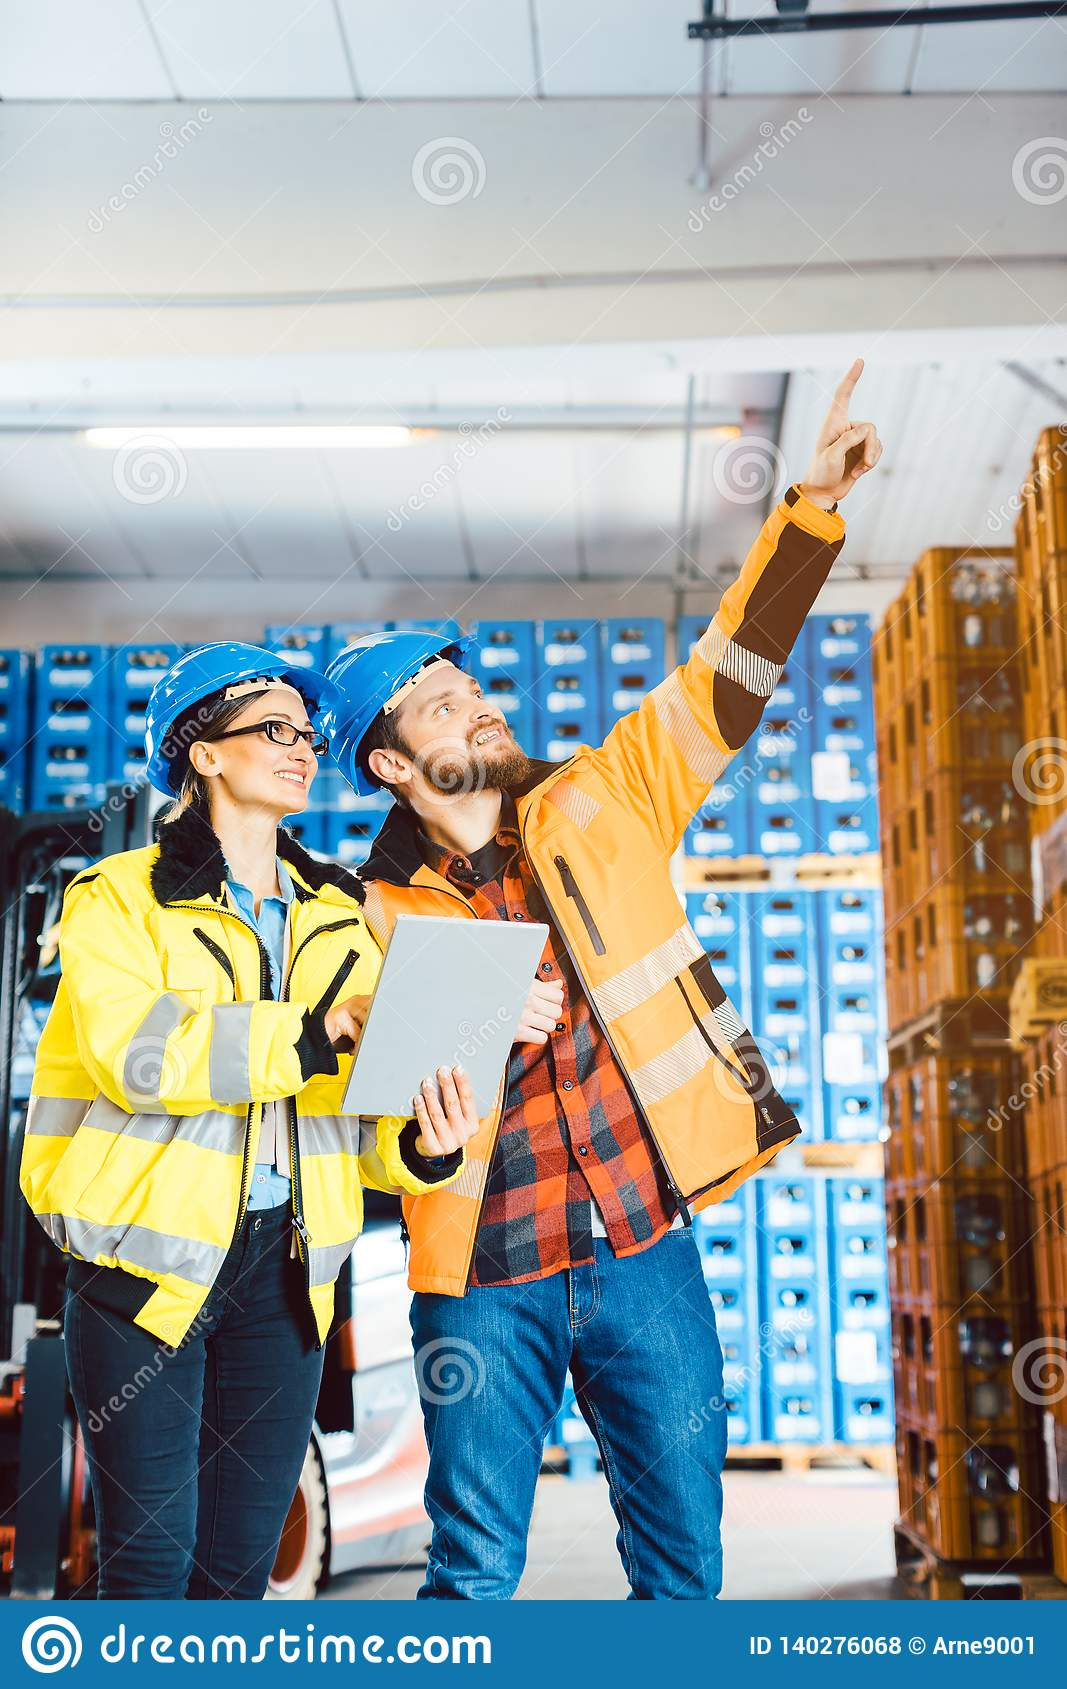 Workers in a logistics warehouse planning the next project